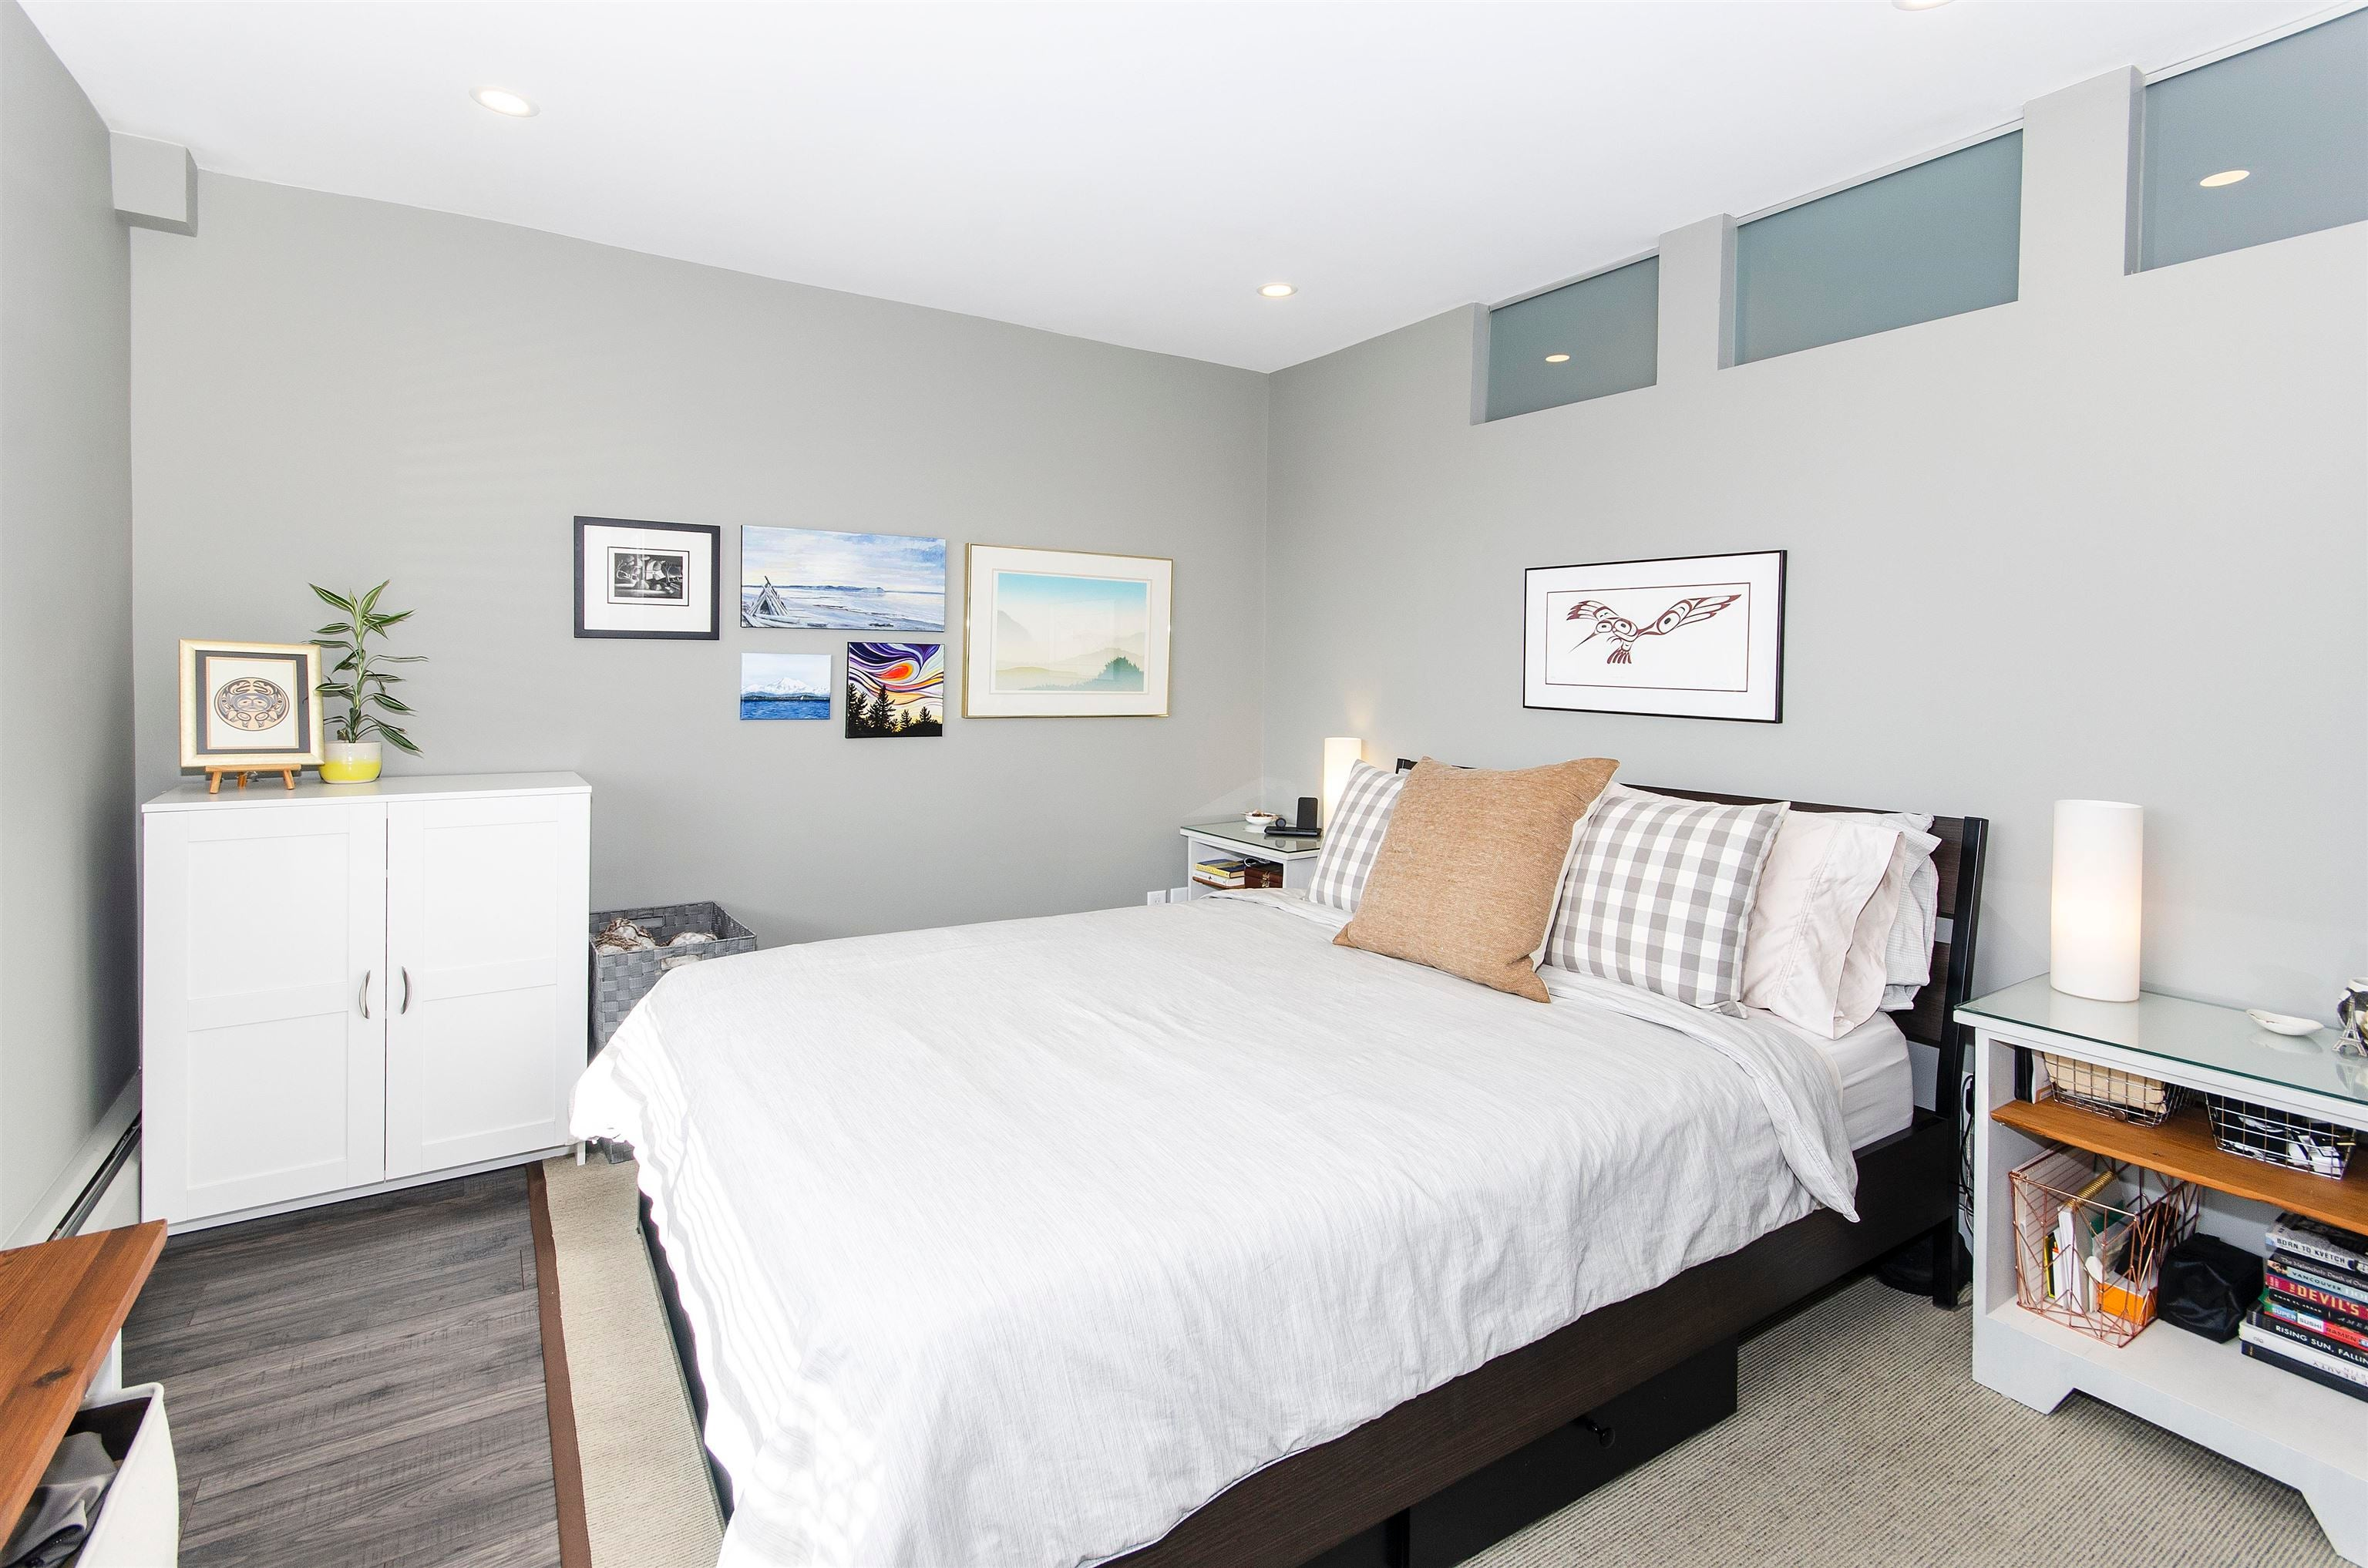 206 175 E 5TH STREET - Lower Lonsdale Apartment/Condo for sale, 2 Bedrooms (R2624759) - #11